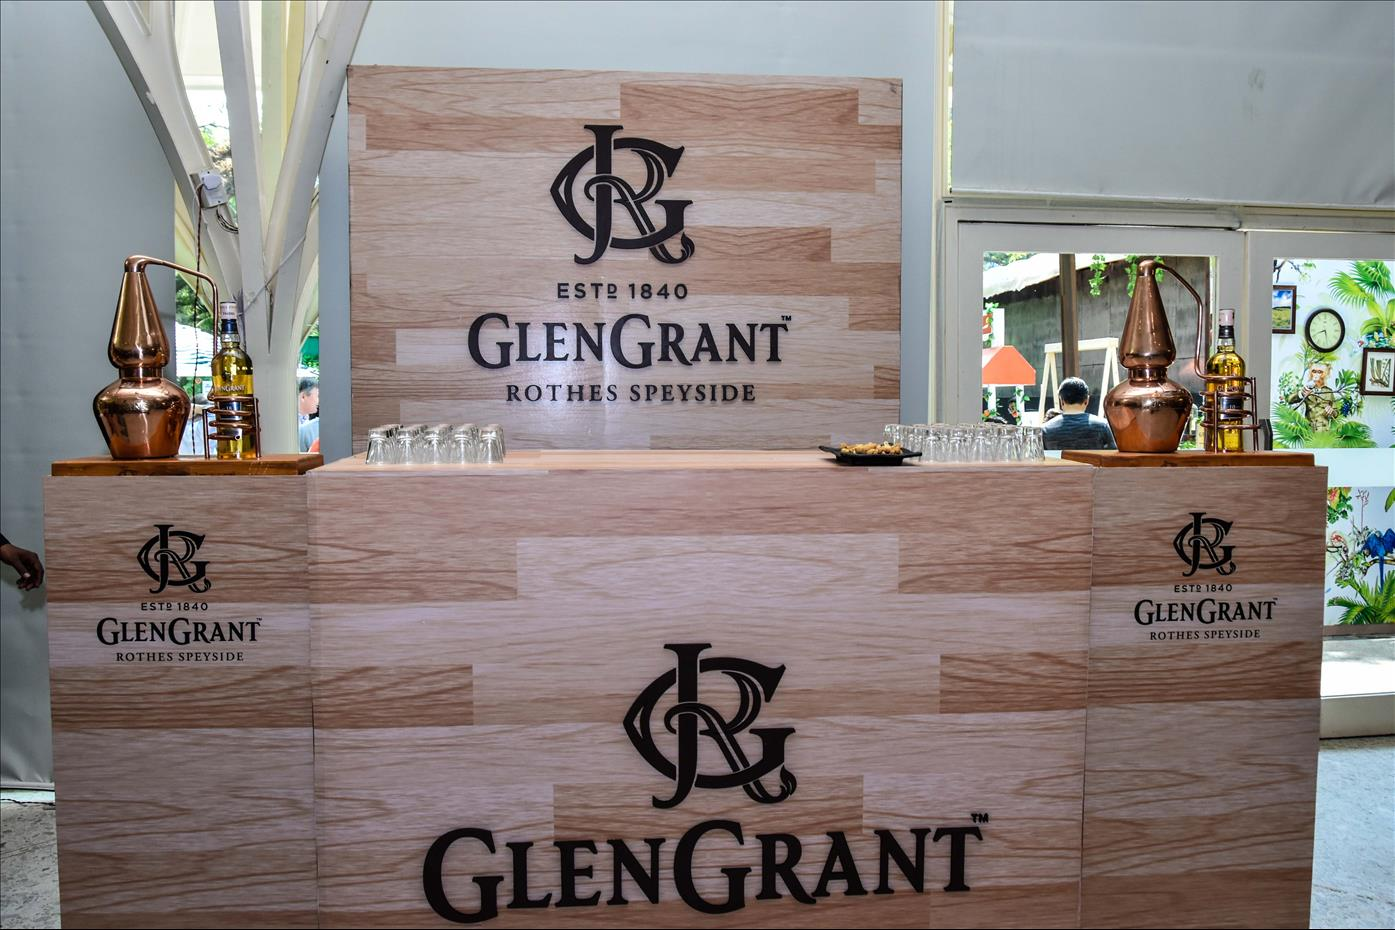 Aspri Spirits And Glengrant Participate In The 1st Edition Of The Vault Biennale photo